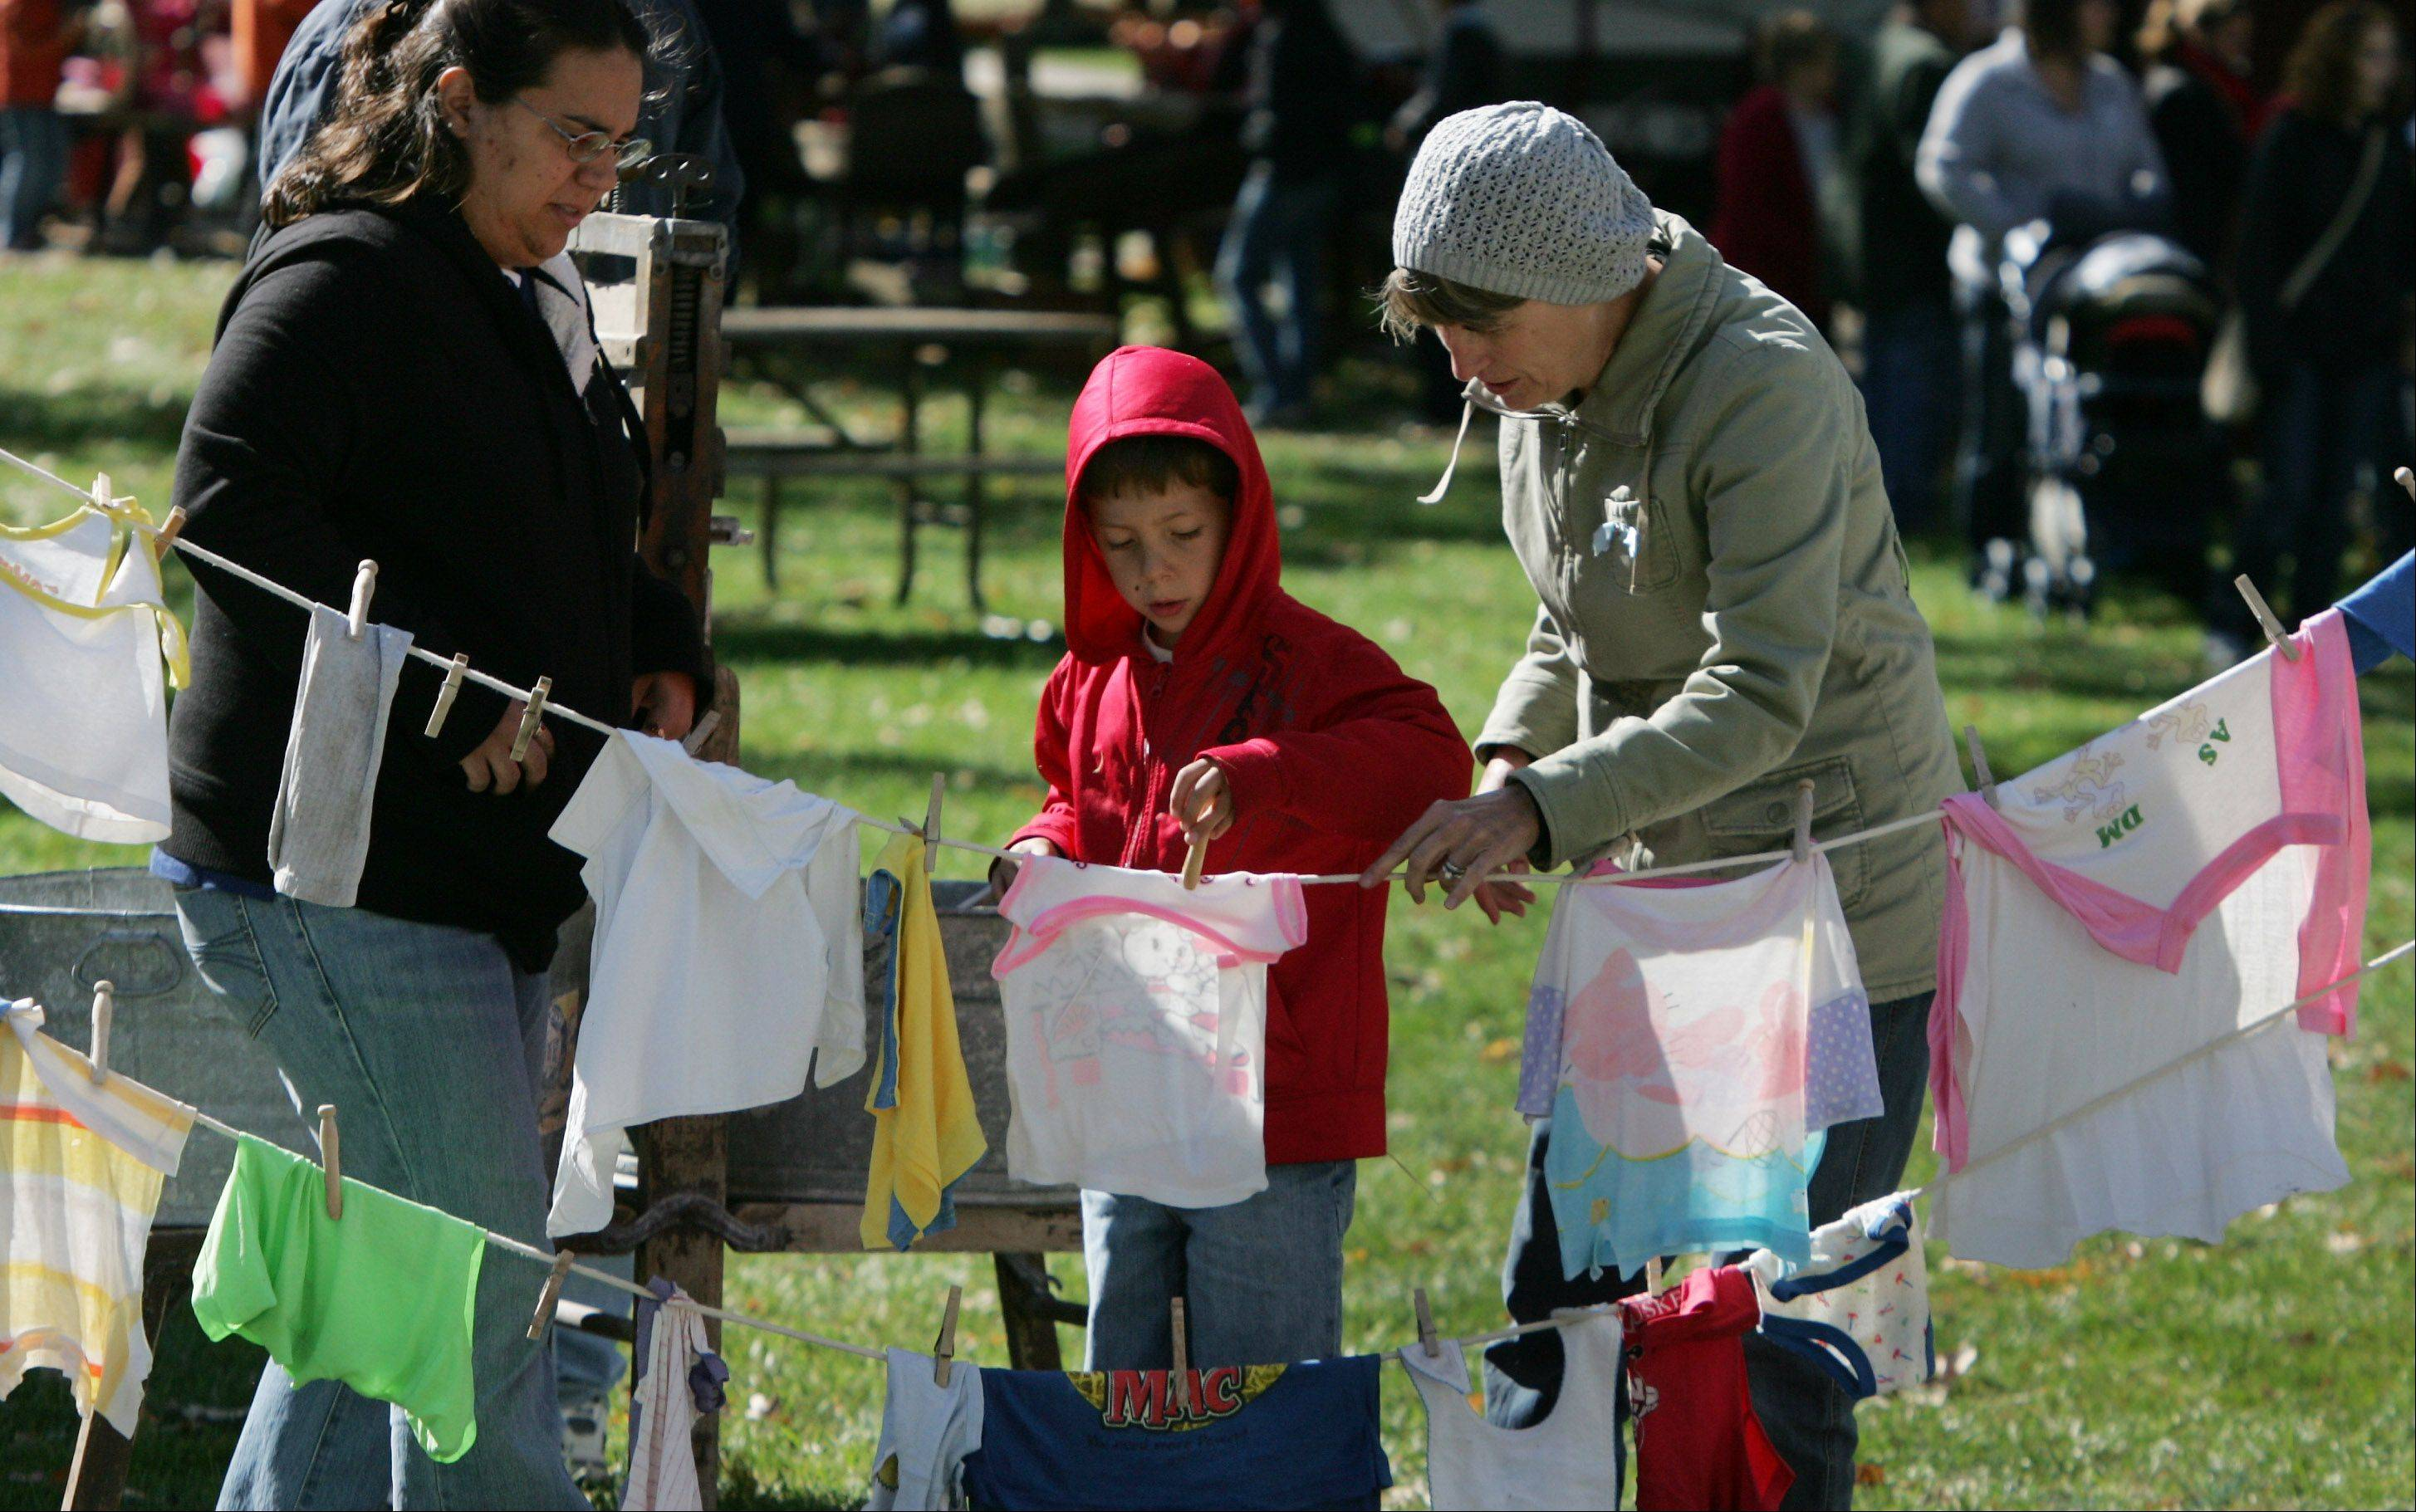 James Hamilton, 6, of Wauconda, hangs clothes on a line with help from his grandmother, Diane, right, and his mother, Carla, after washing them on an old washboard during the 20th Annual Farm Heritage Festival Sunday at Lakewood Forest Preserve near Wauconda. The event was co-sponsored by the Lake County Discovery Museum and the Lake County Farm Heritage Association.